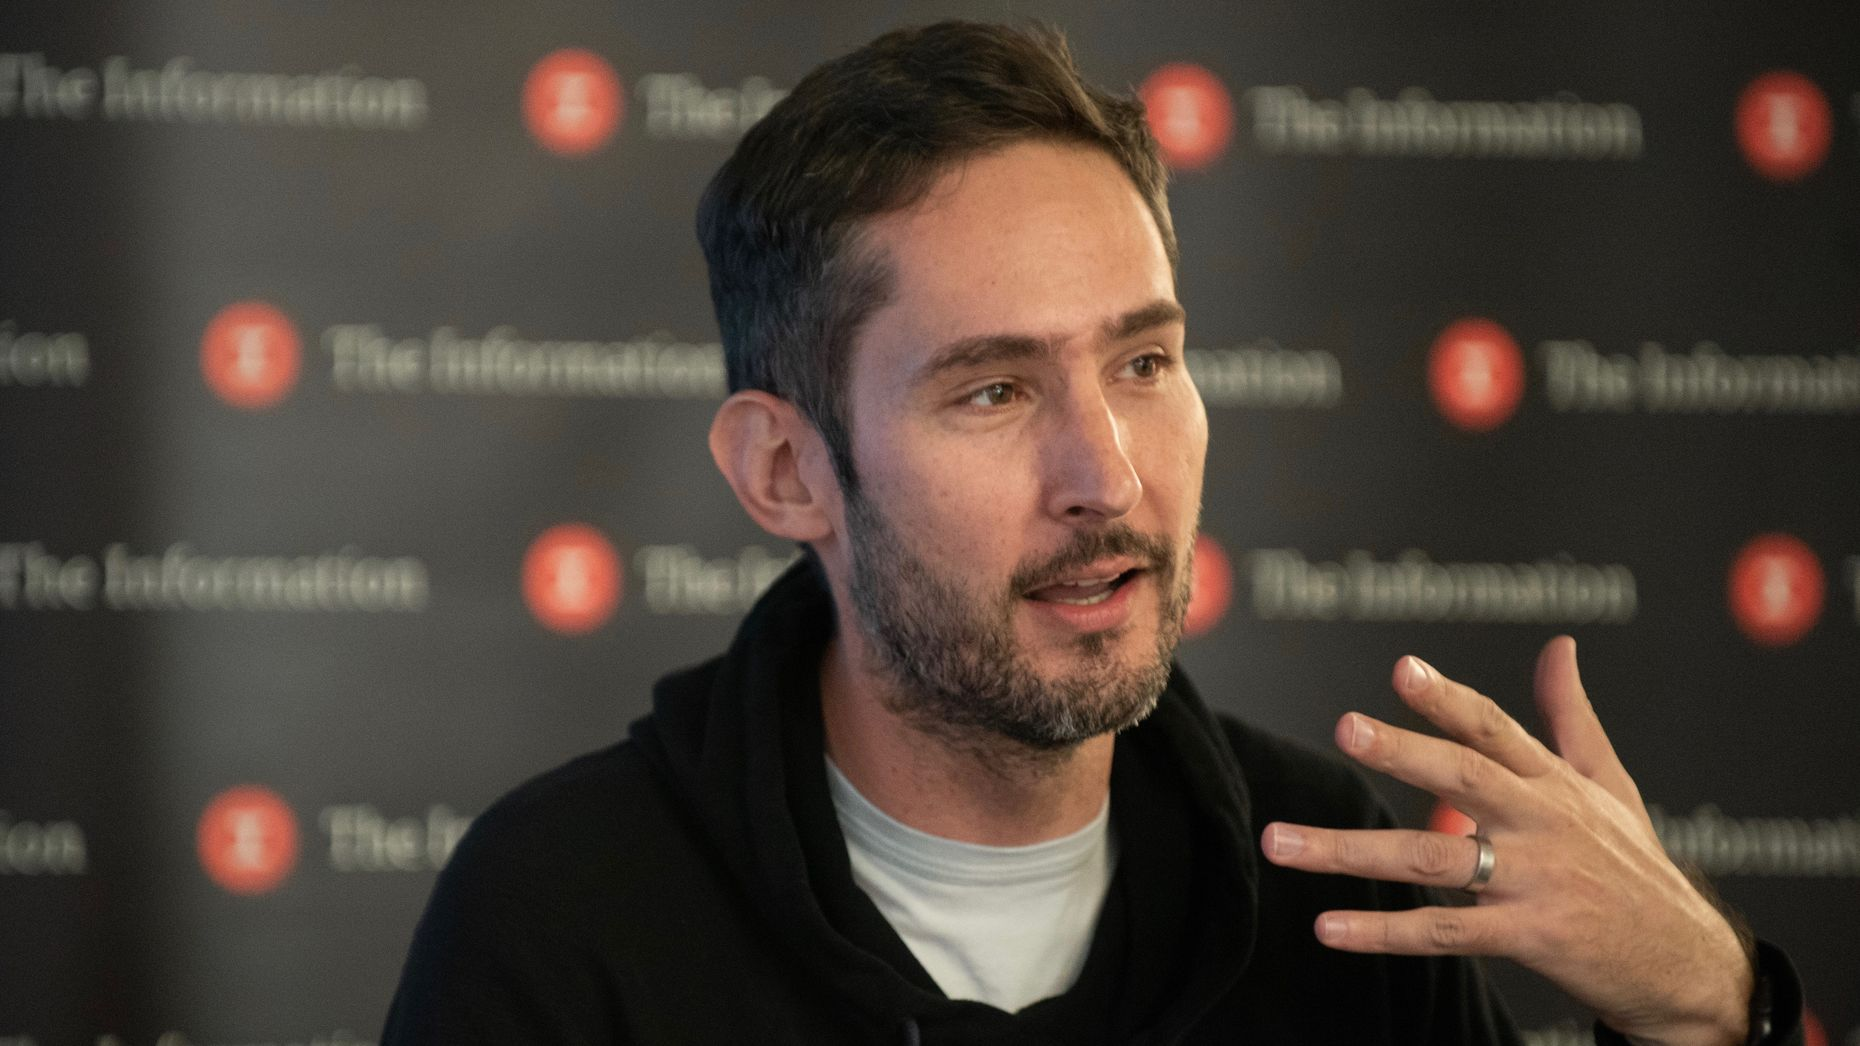 Former Instagram CEO Kevin Systrom on Thursday. Photo by Erin Beach